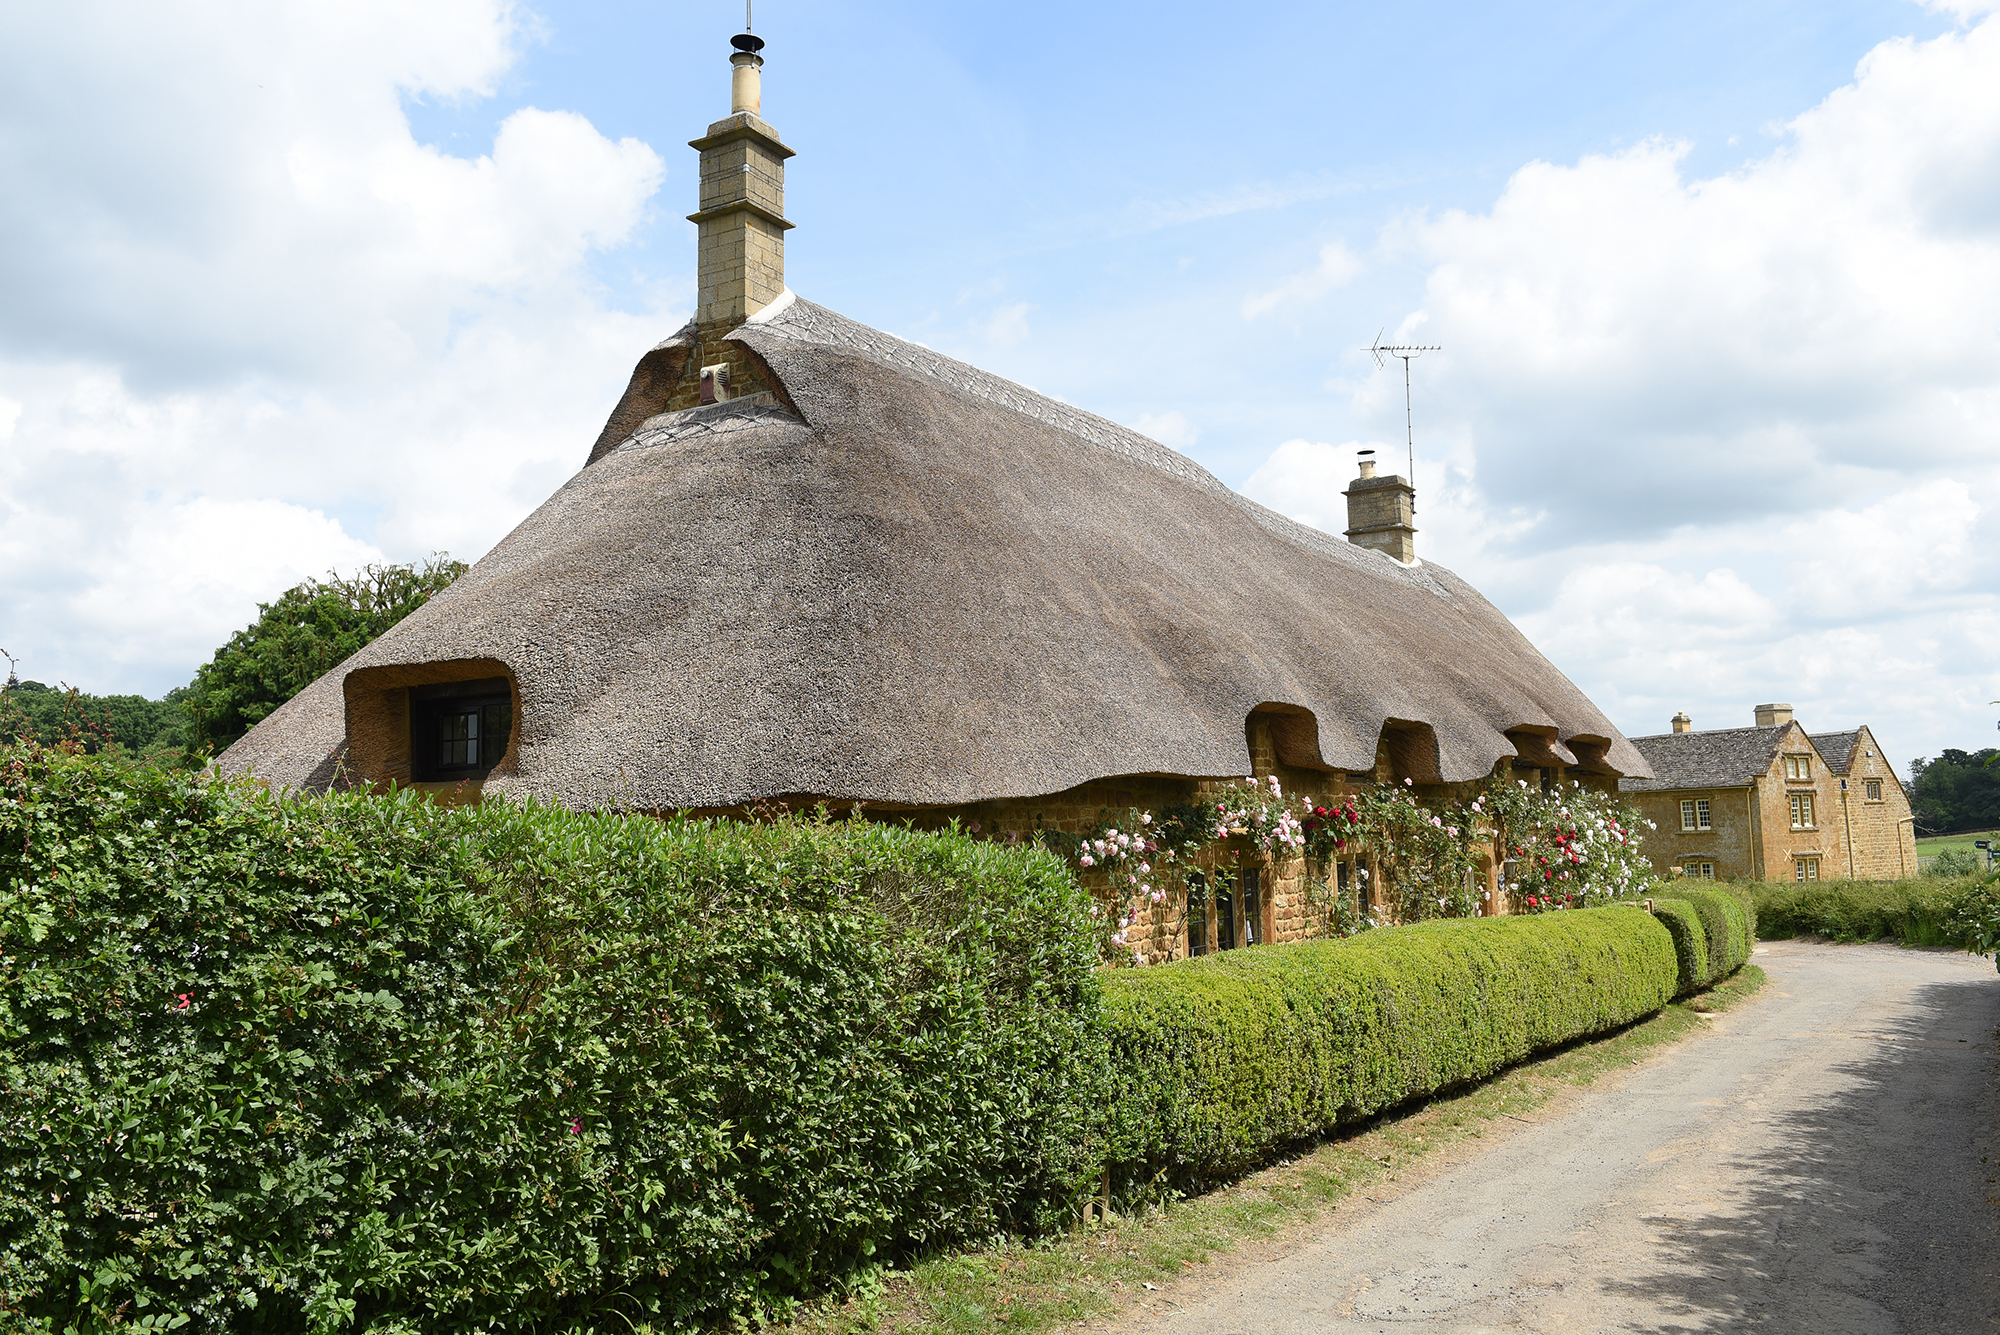 Prince-Harry-and-Duchess-Meghan's-Country-Retreat - The picturesque cottages that sit within the village of Great Tew are so picturesque and the perfect backdrop for a leisurely stroll.